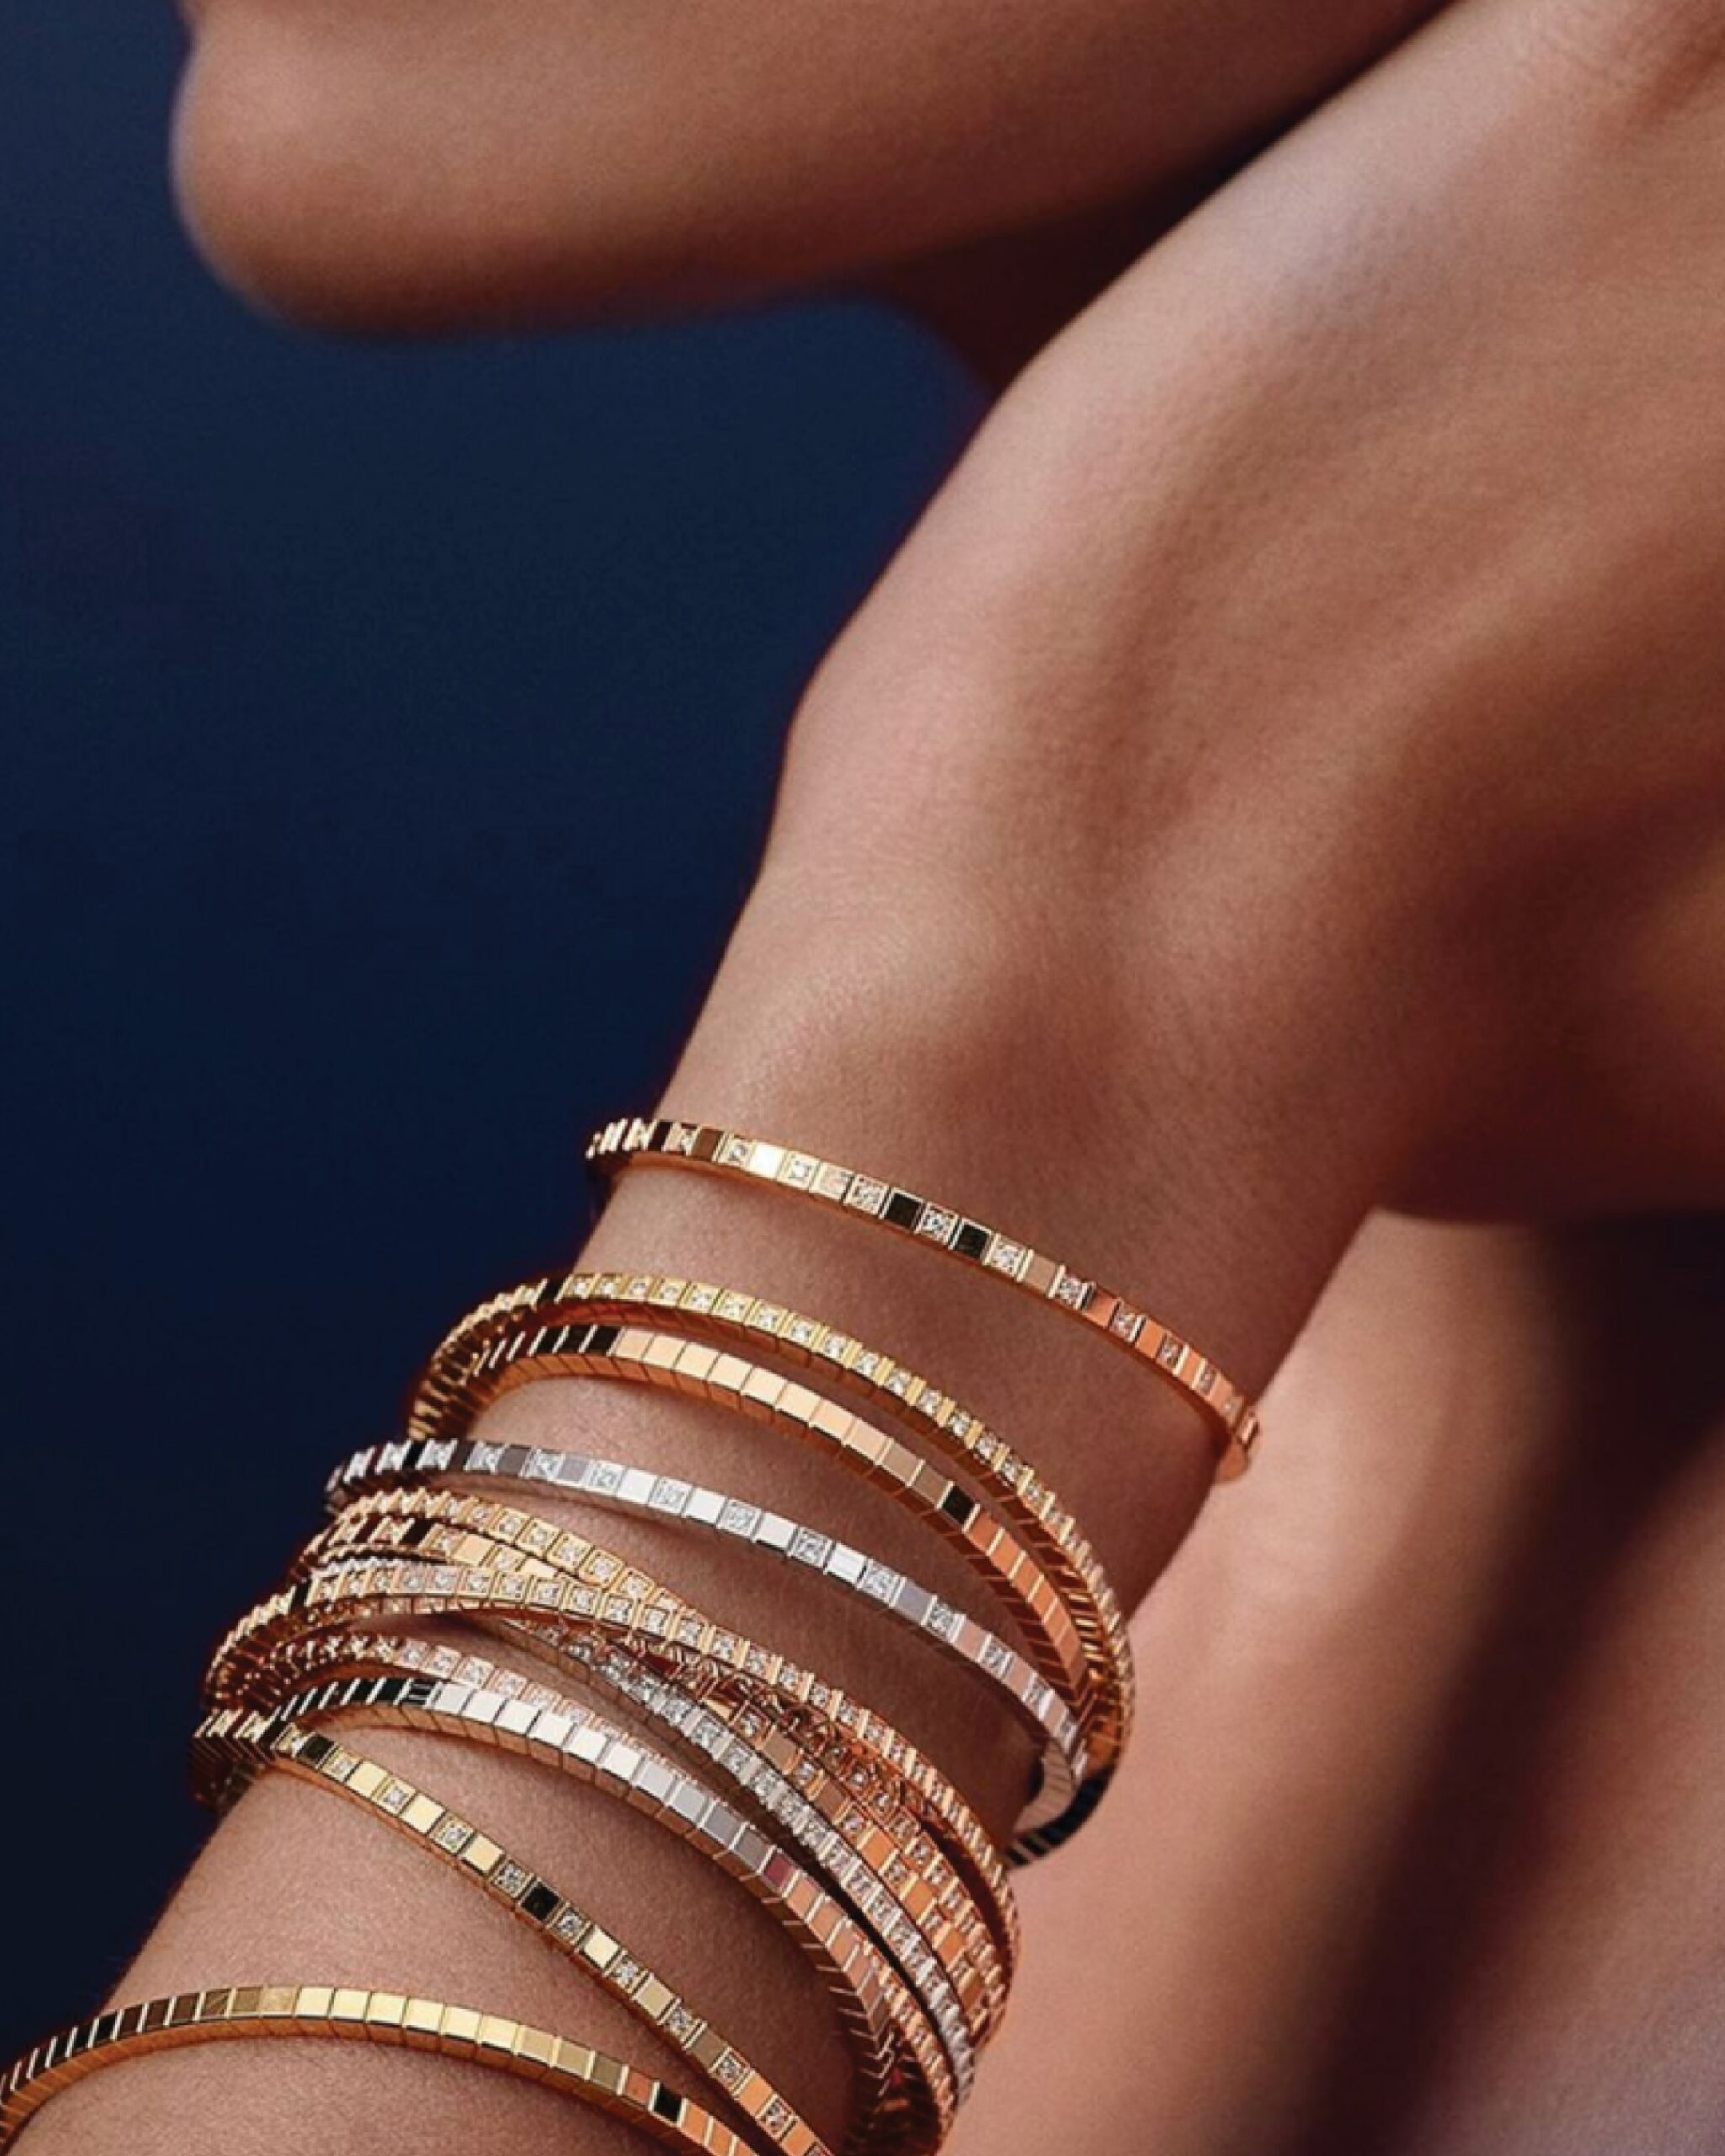 Ice Cube Pure Diamond Bangle bracelet from Chopard that features 18 karat yellow gold squares interspersed with diamonds